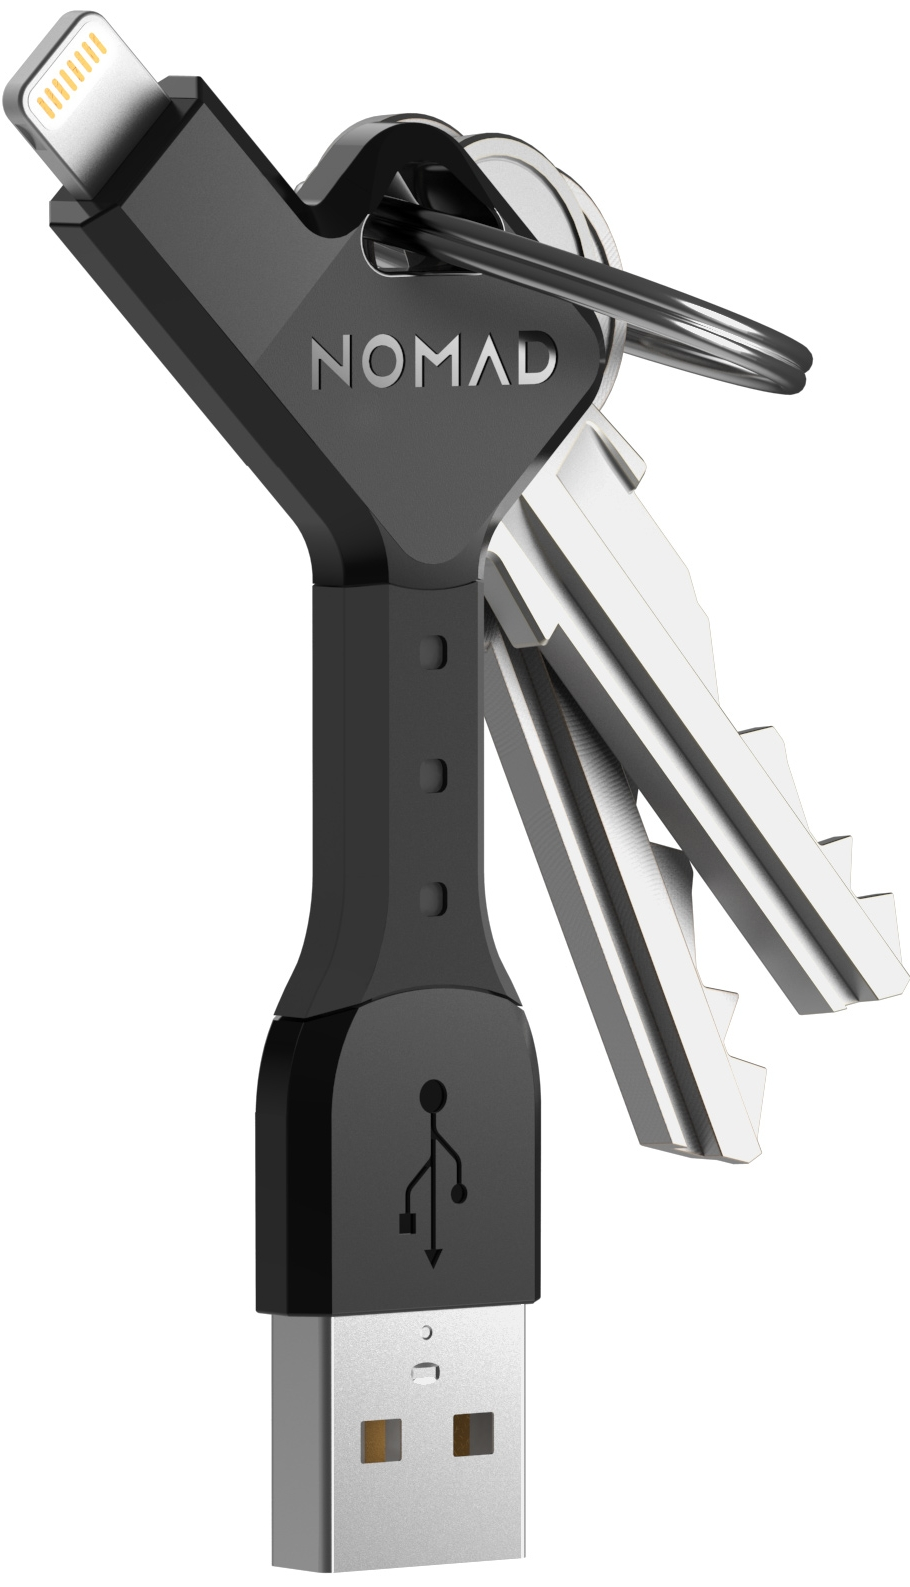 Nomad Goods Key for iPhone, $19.95